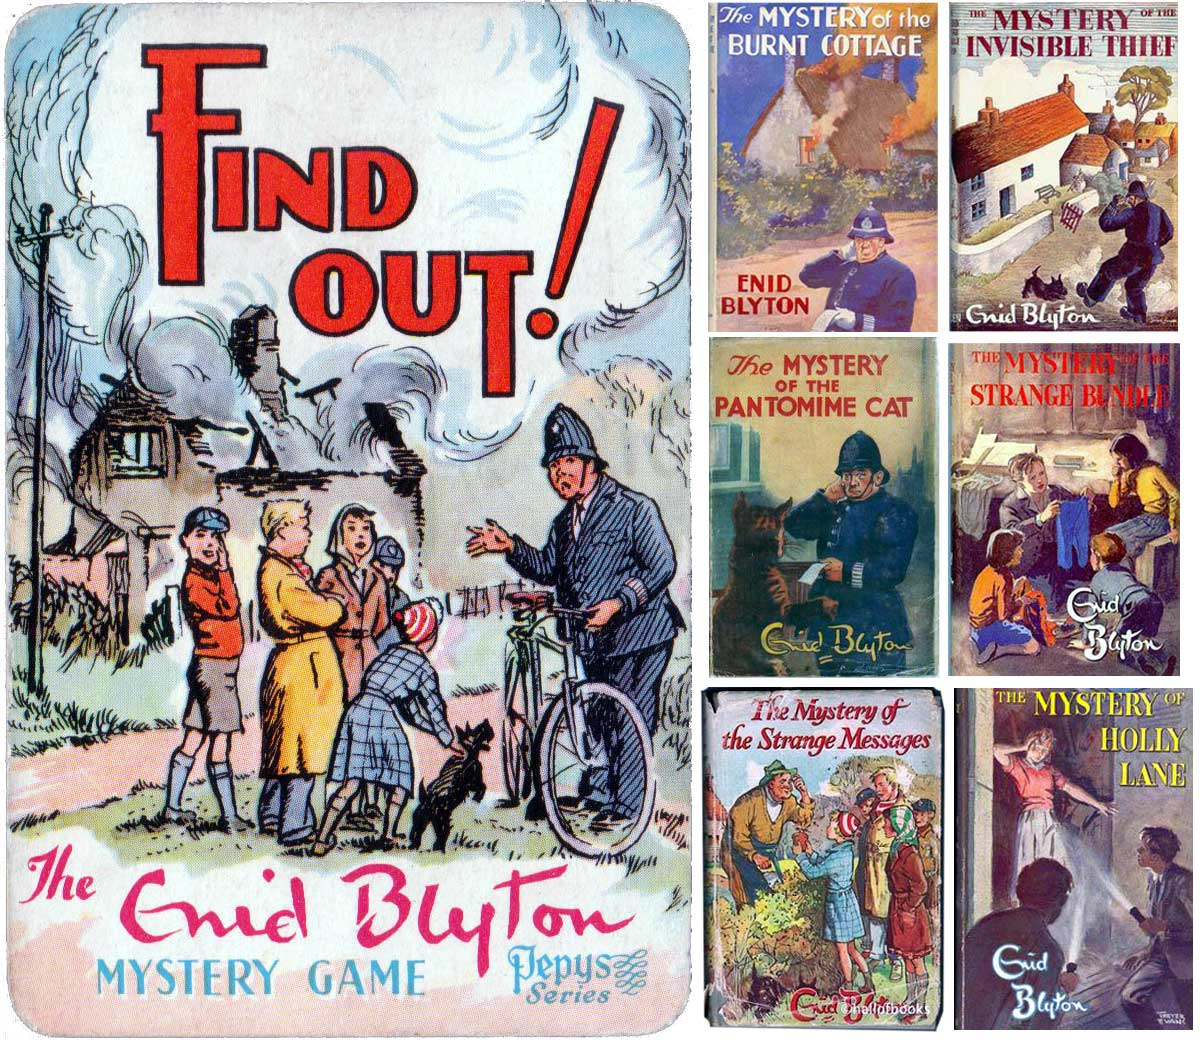 Find Out mystery card game published by Pepys, 1958 and book covers by Enid Blyton